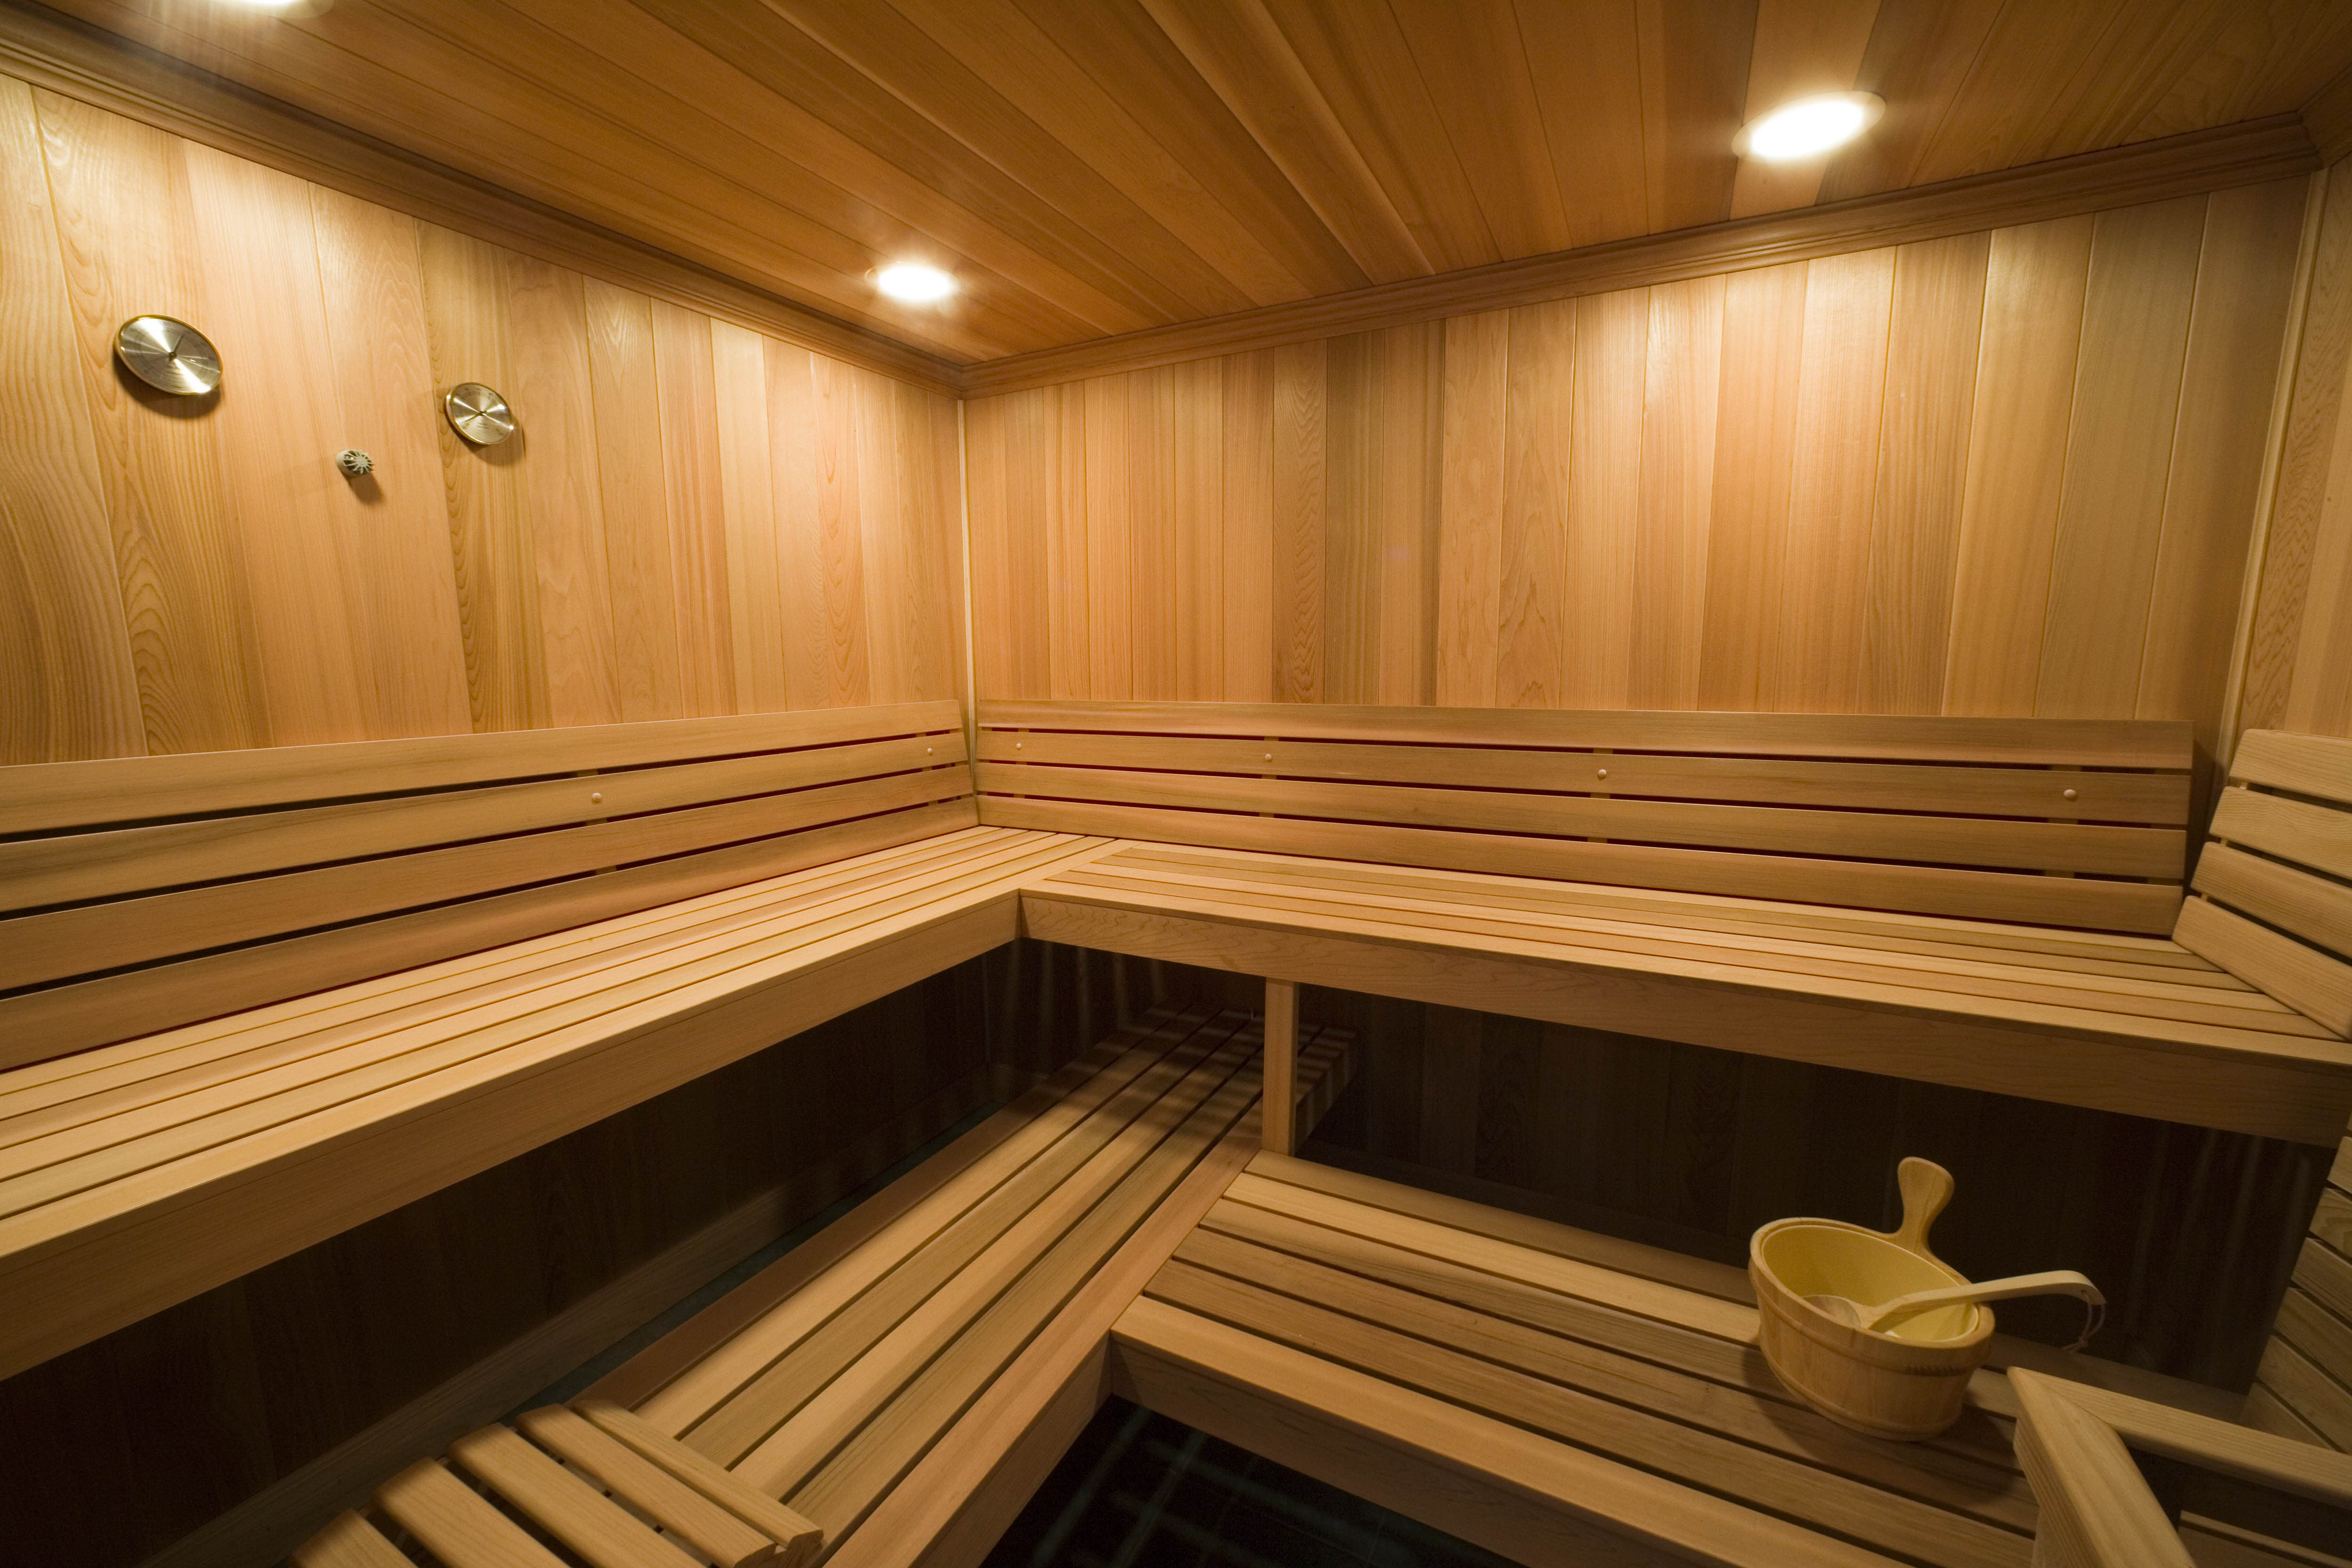 beneficios de la sauna entrenamiento. Black Bedroom Furniture Sets. Home Design Ideas